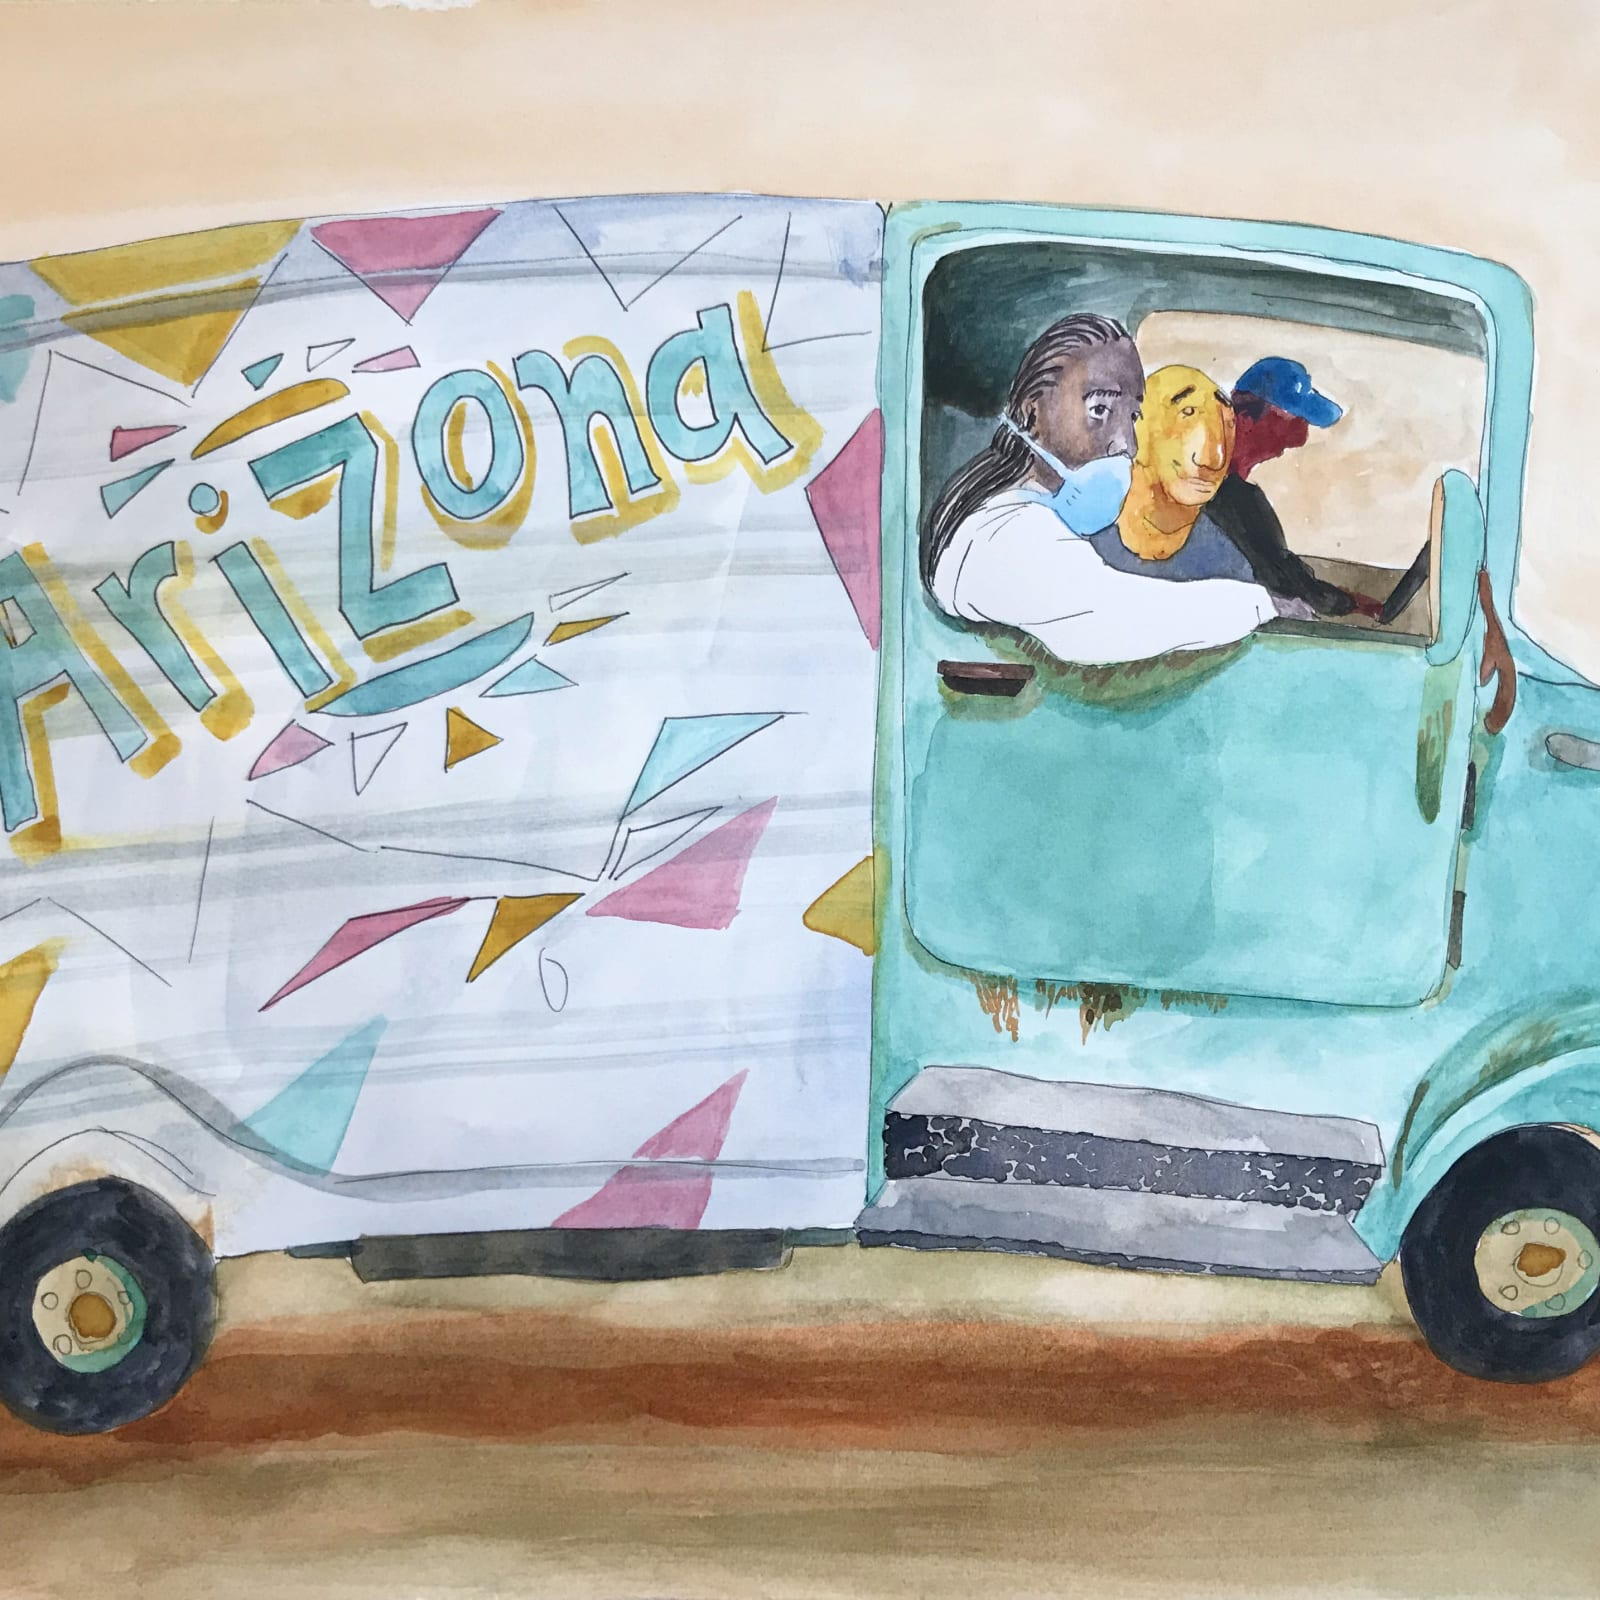 Maggie Ellis  Arizona Tea Truck, 2020  Watercolor on paper  10 x 14 in (25.4 x 35.6 cm)